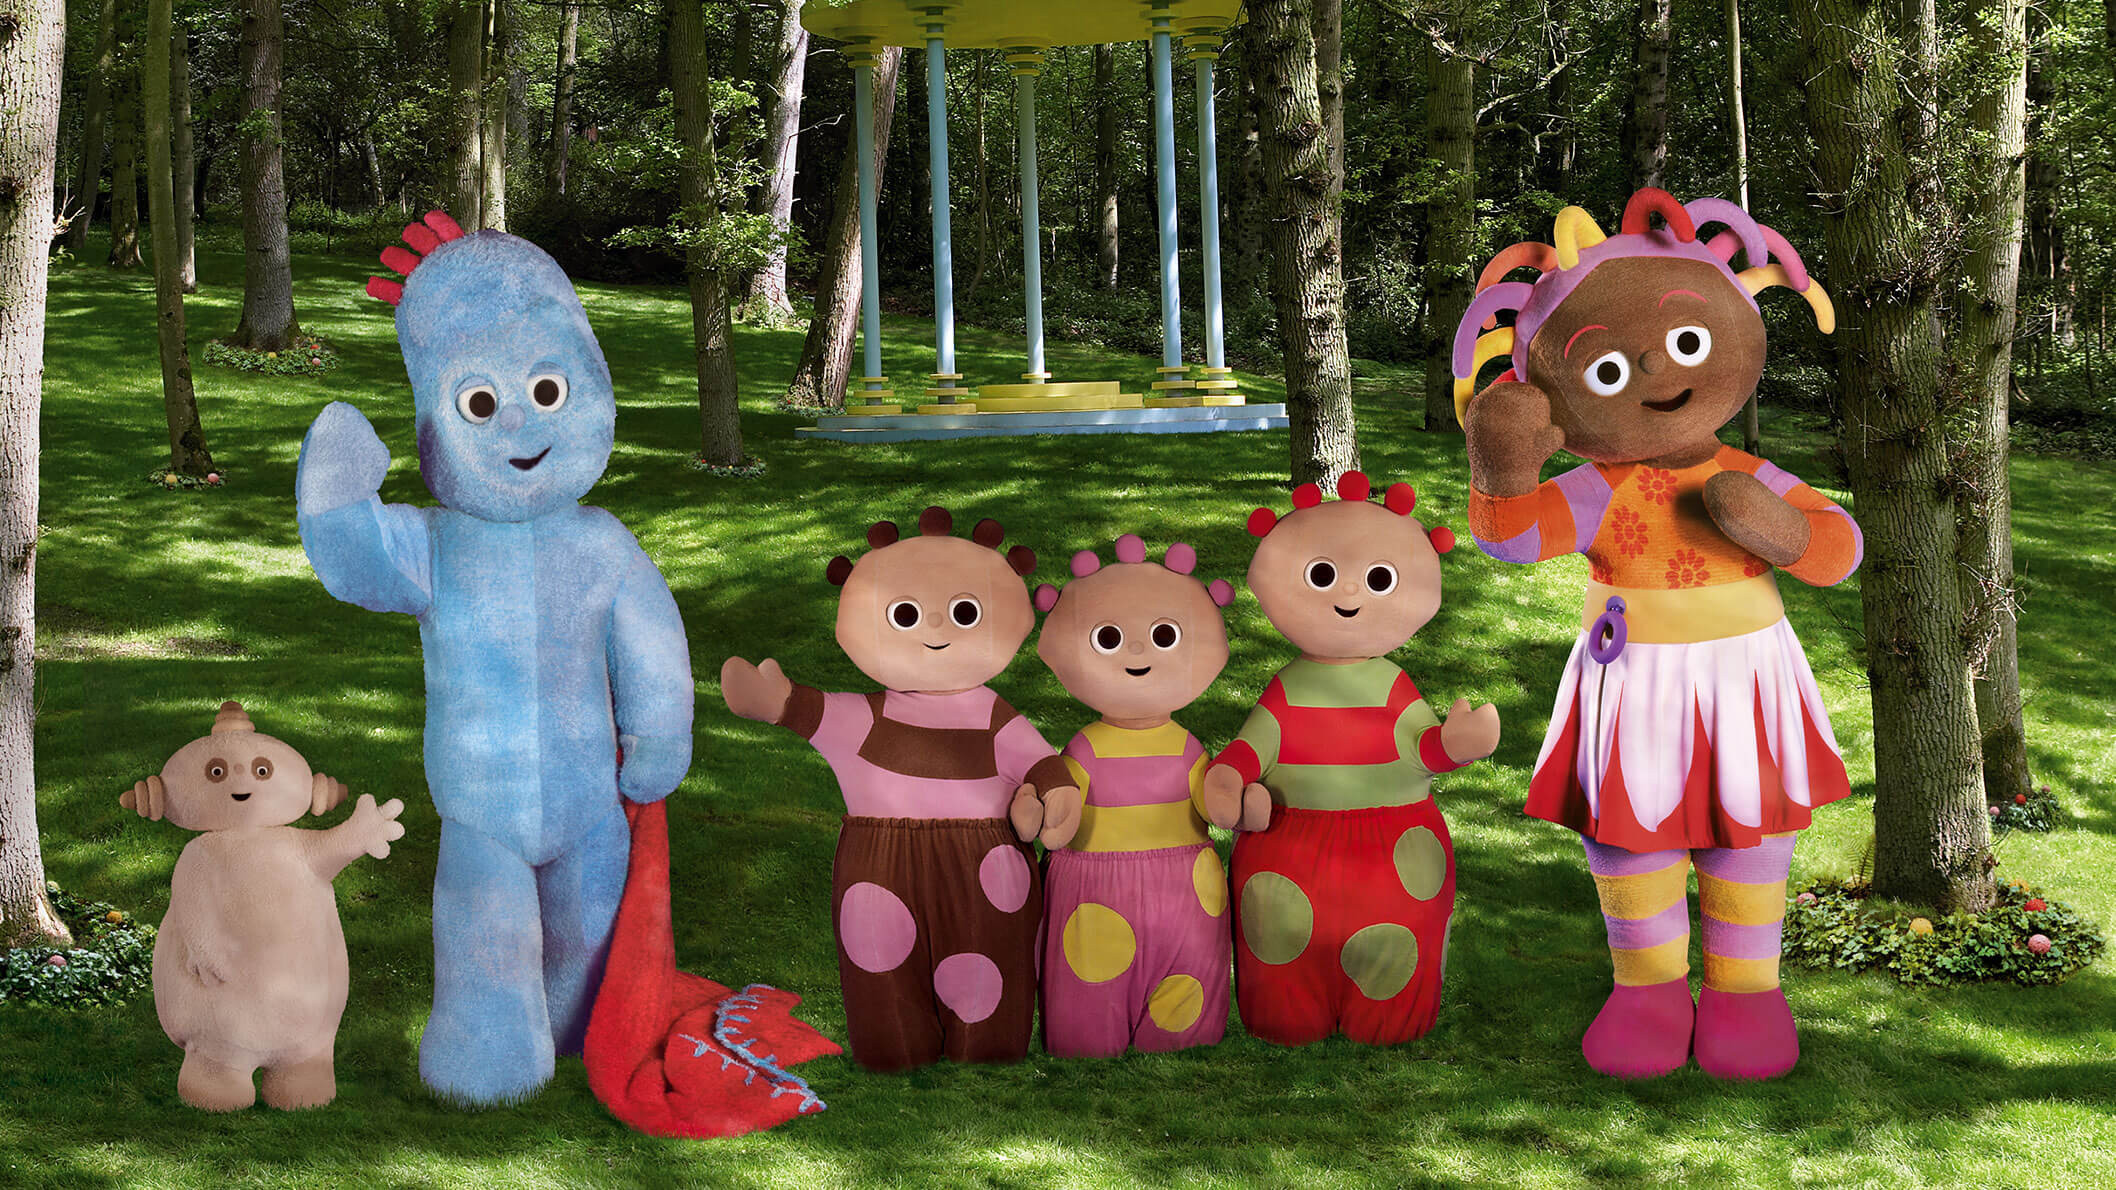 Main Brand Hero In the Night Garden image